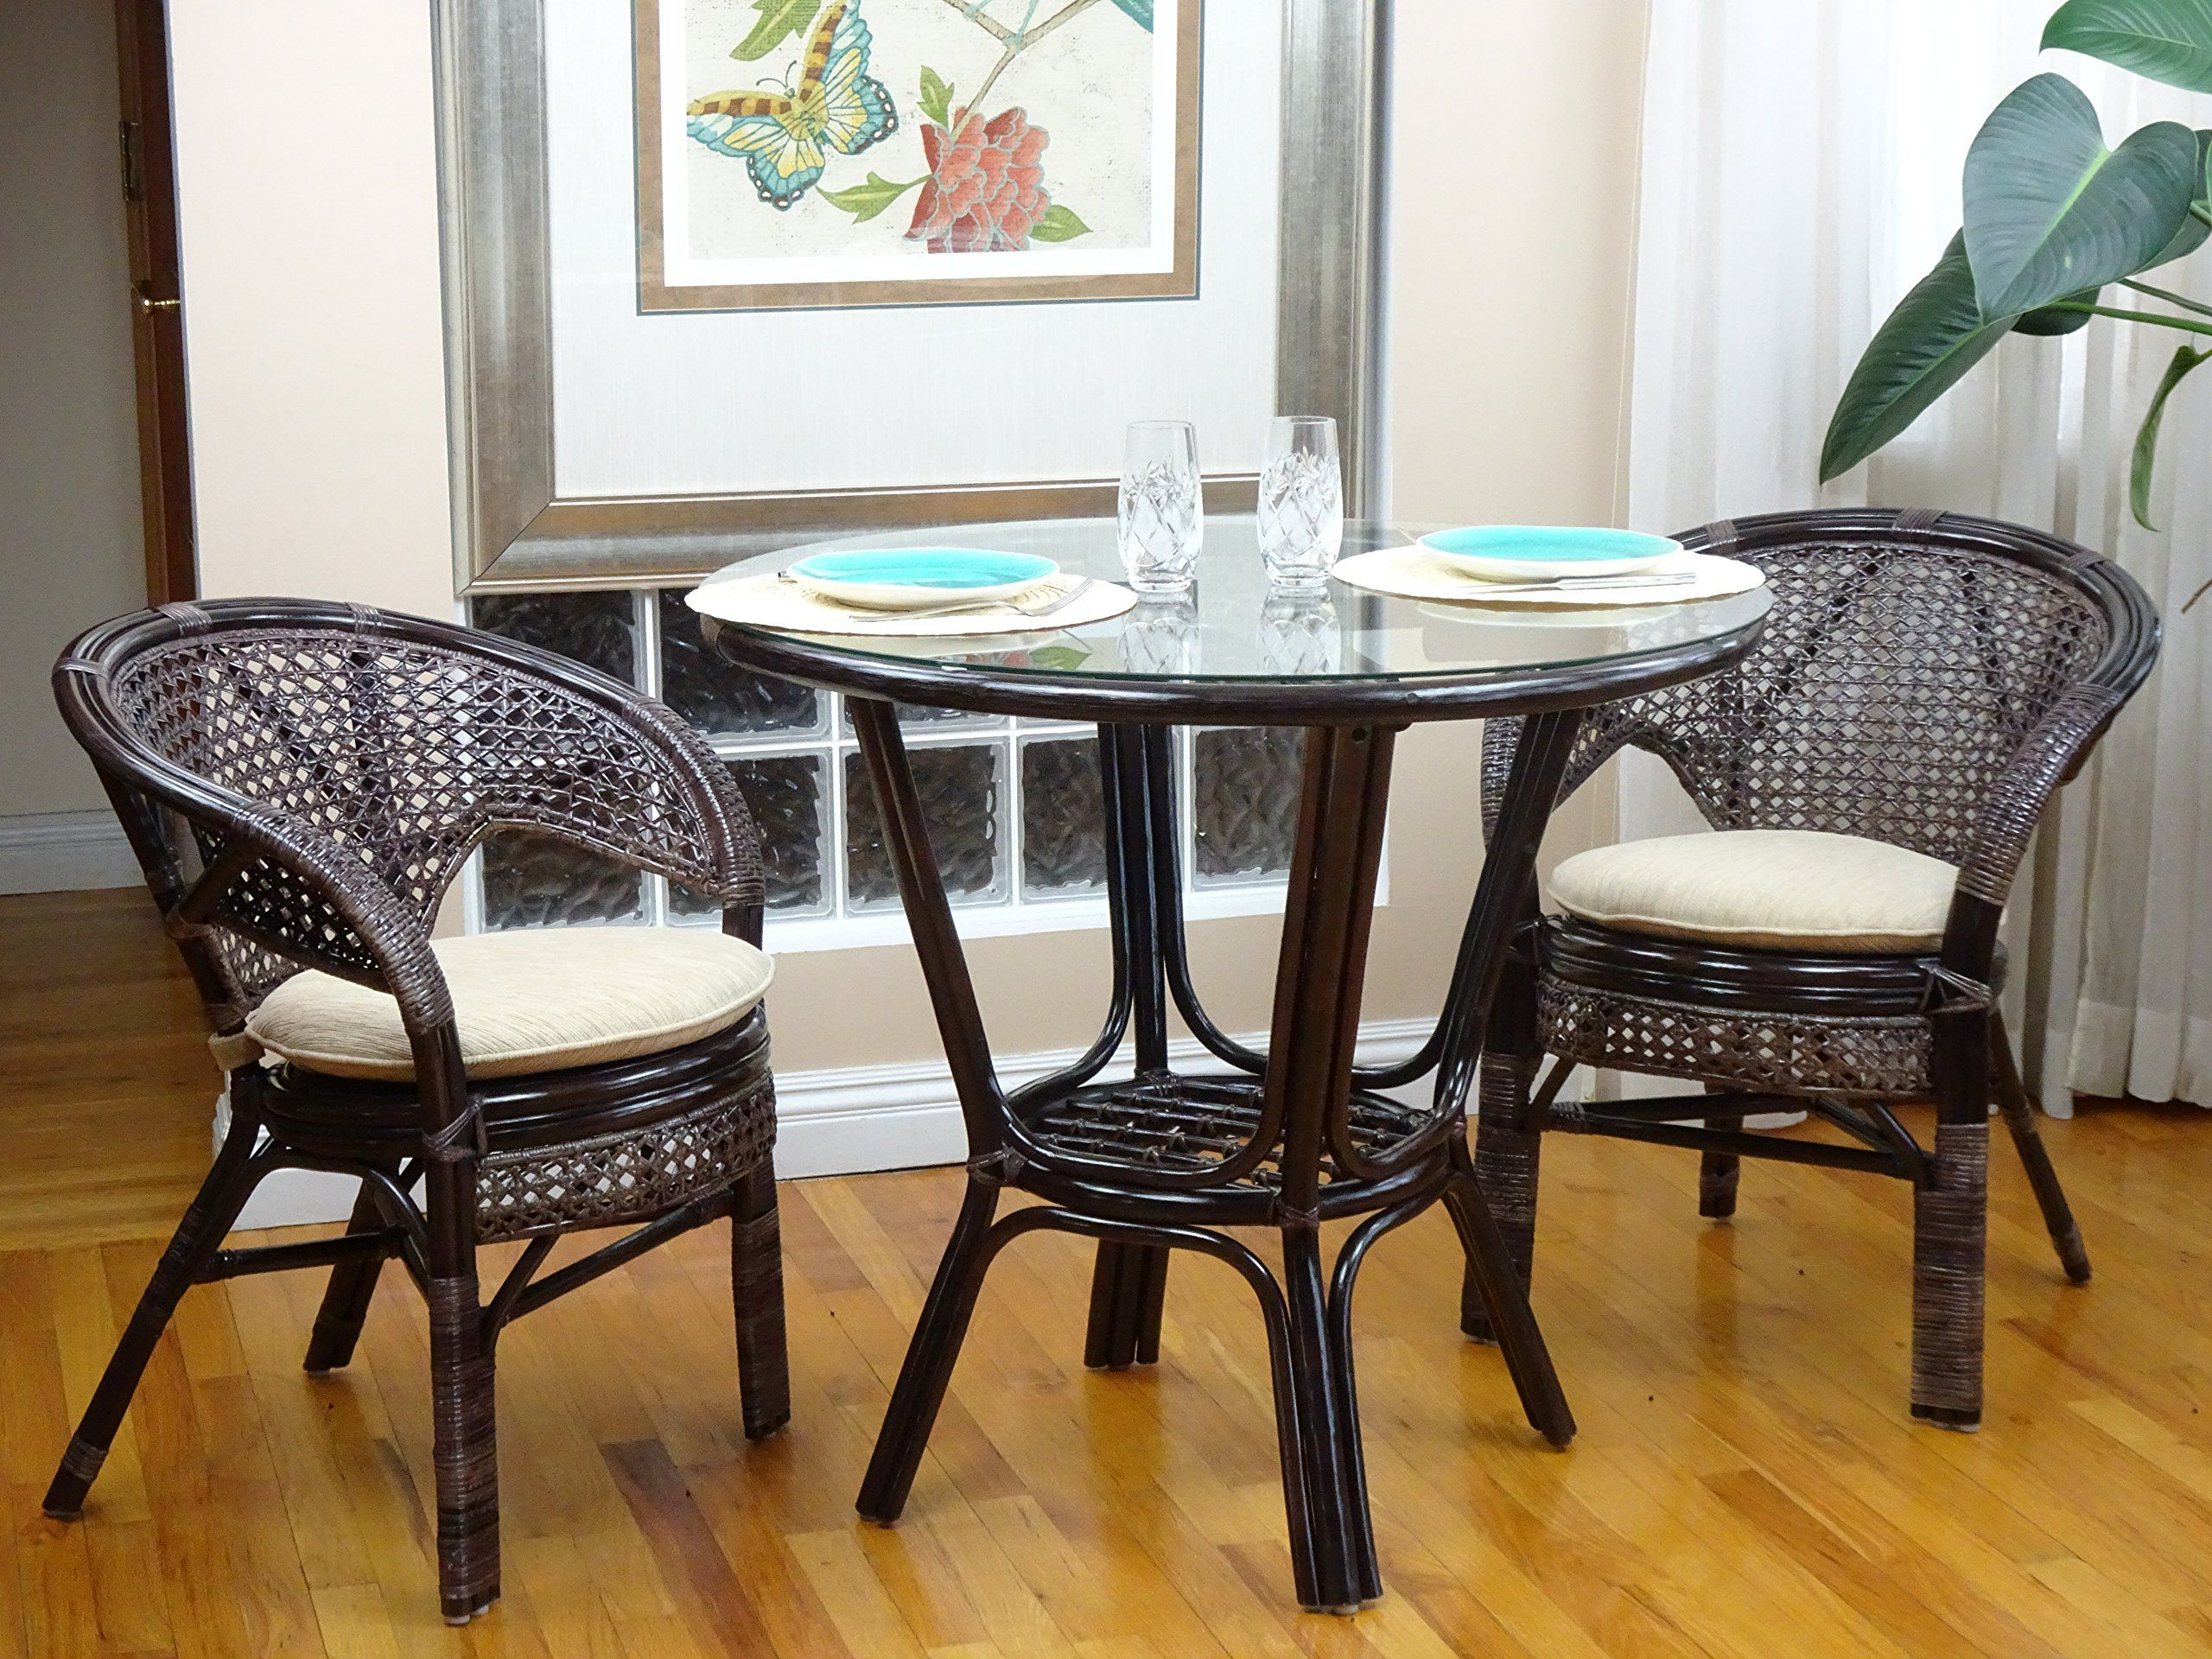 3 Pcs Pelangi Rattan Wicker Dining Set Round Table Glass Top With Favorite Alamo Transitional 4 Seating Double Drop Leaf Round Casual Dining Tables (View 25 of 26)